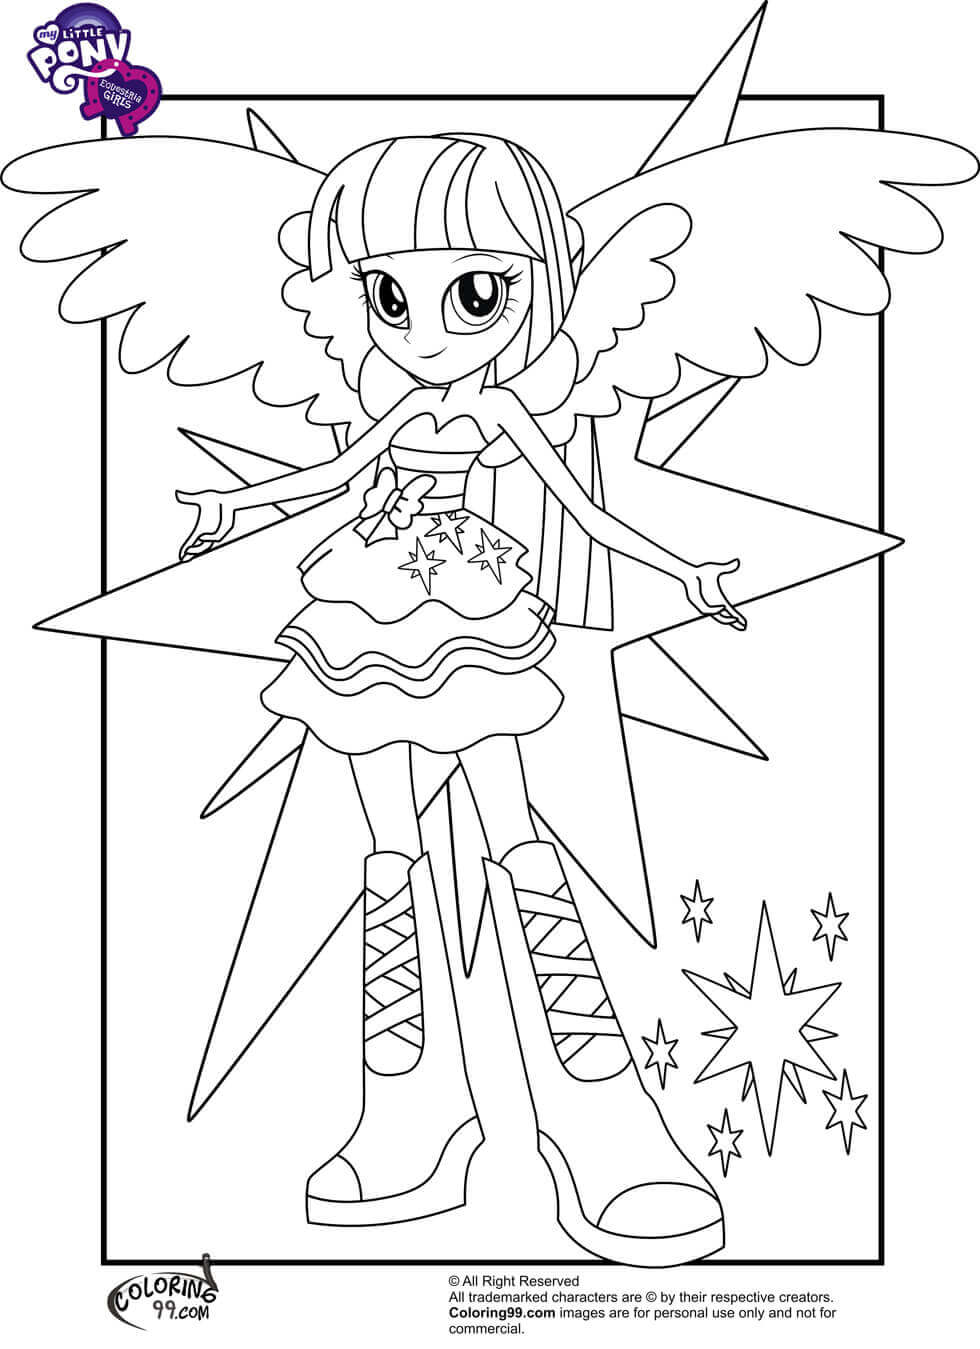 Equestria Girls Coloring Pages Amazing 15 Printable My Little Pony Equestria Girls Coloring Pages Inspiration